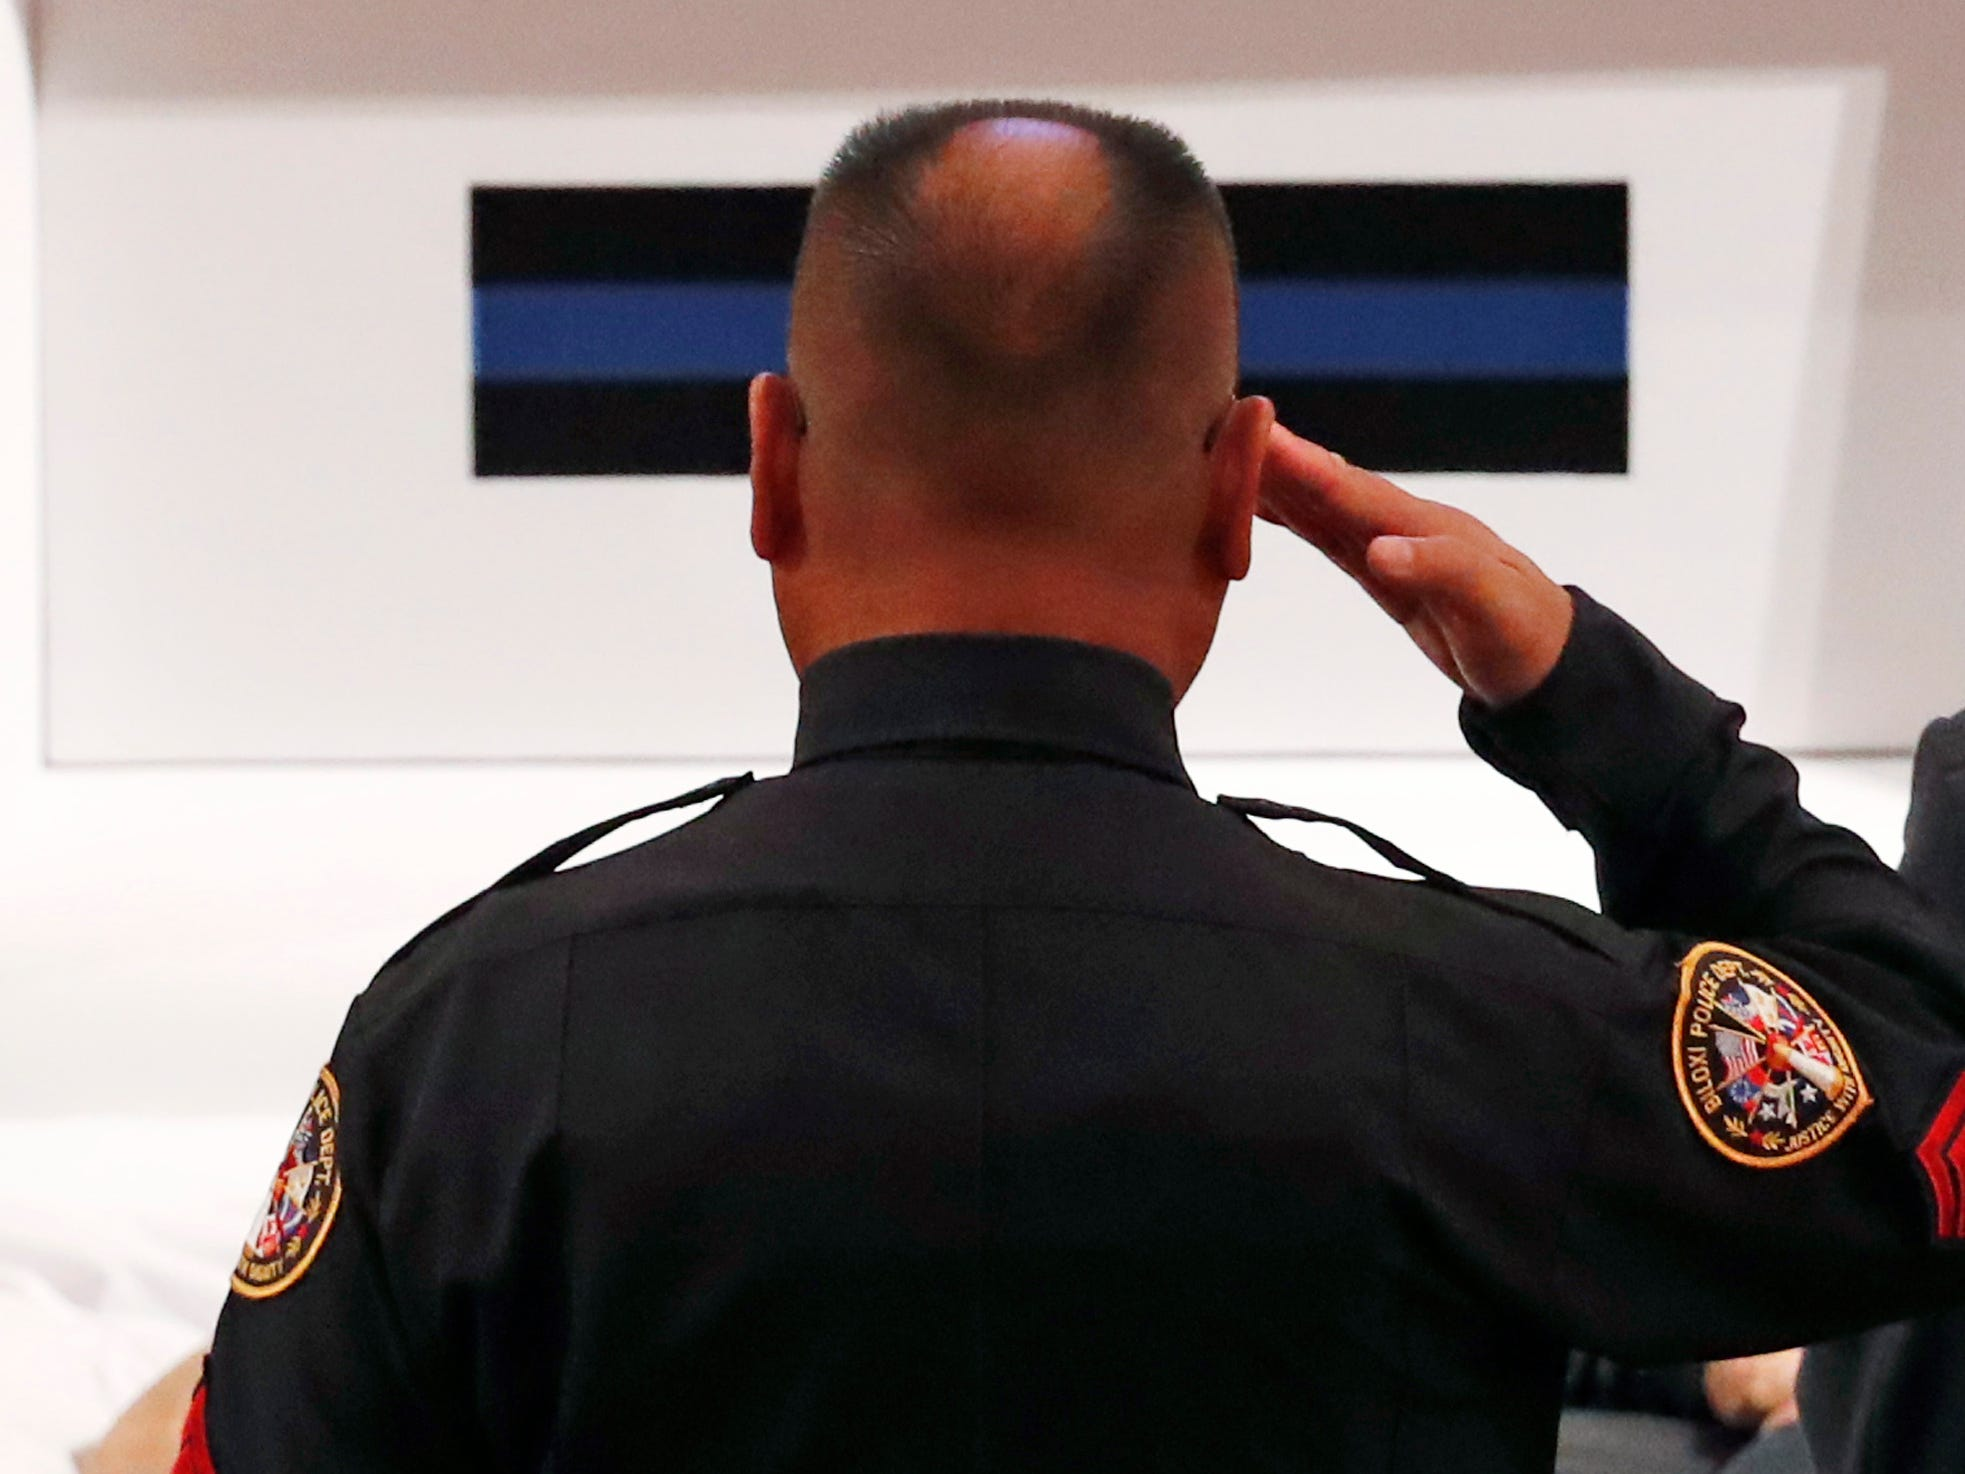 A lone policeman salutes the body of officer Robert S. McKeithen, during visitation at the First Baptist Church of Biloxi, Miss., Monday morning, May 13, 2019. McKeithen was killed outside headquarters May 5.